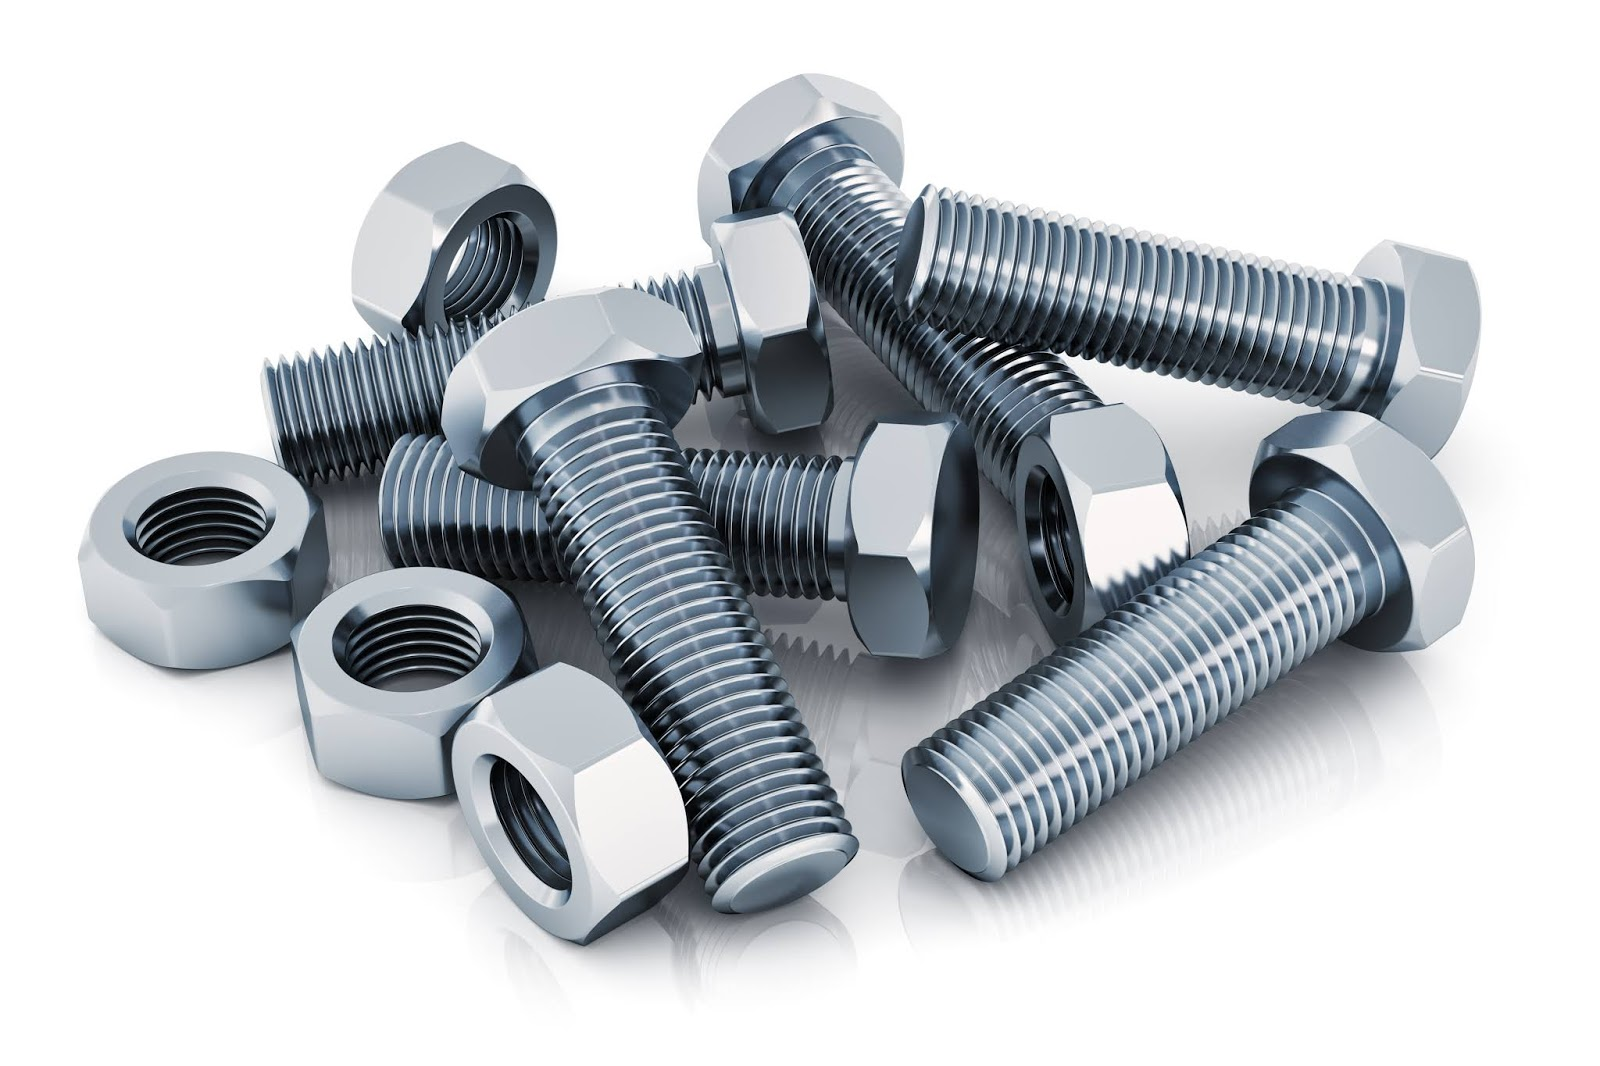 Bolt Tightening Can Be Done With An Ease With Reliable Steps 3